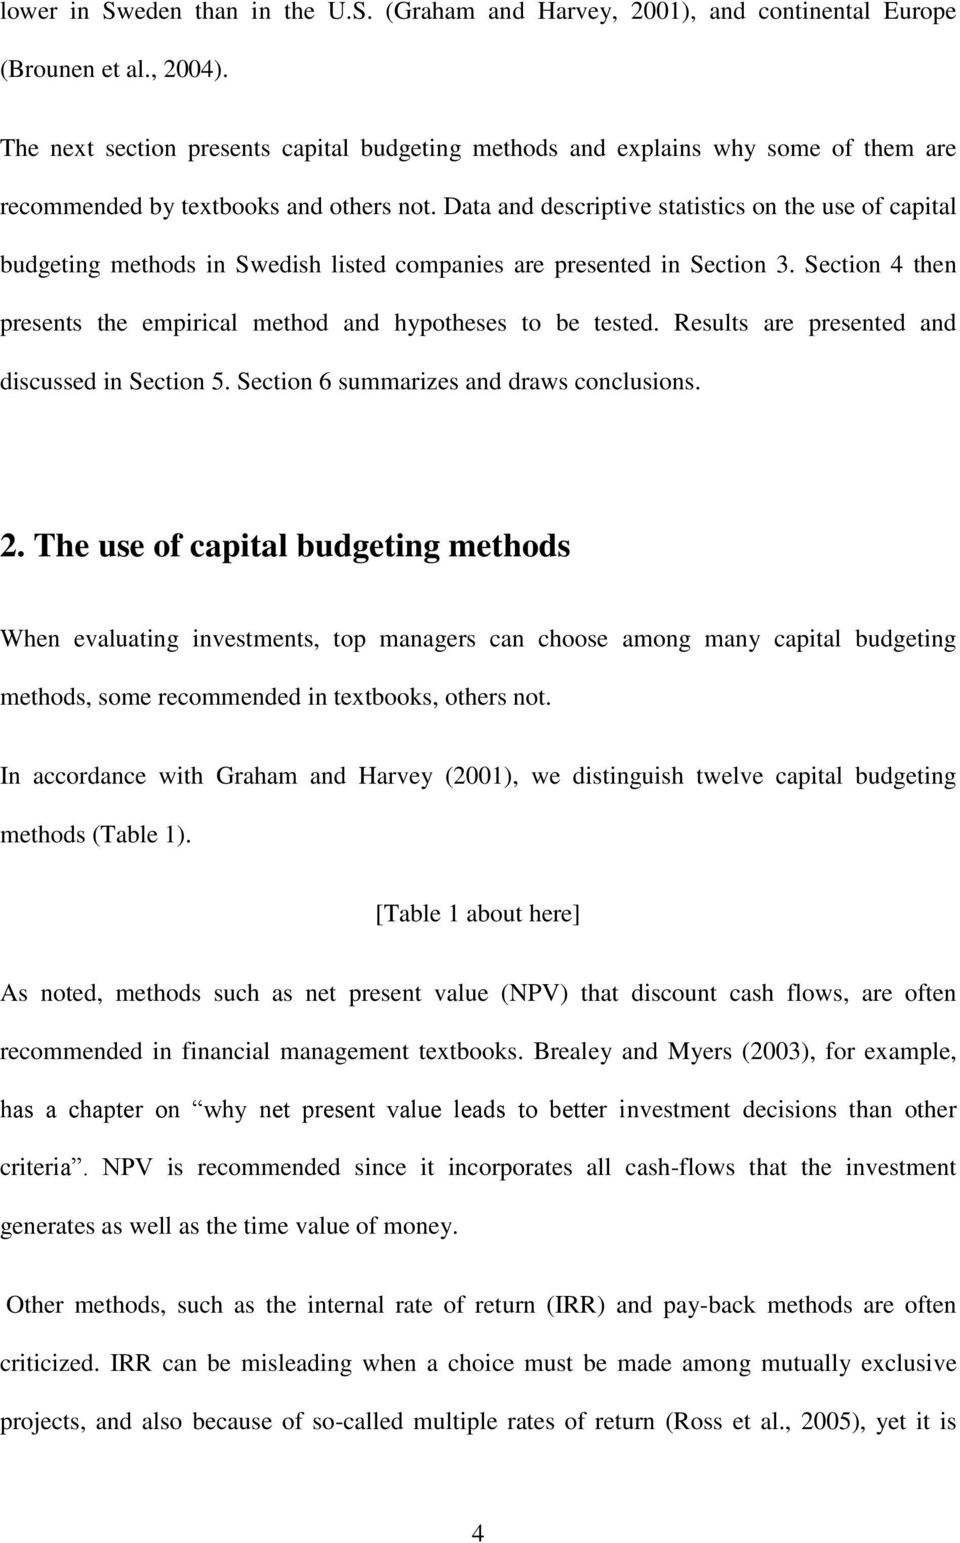 Data and descriptive statistics on the use of capital budgeting methods in Swedish listed companies are presented in Section 3.